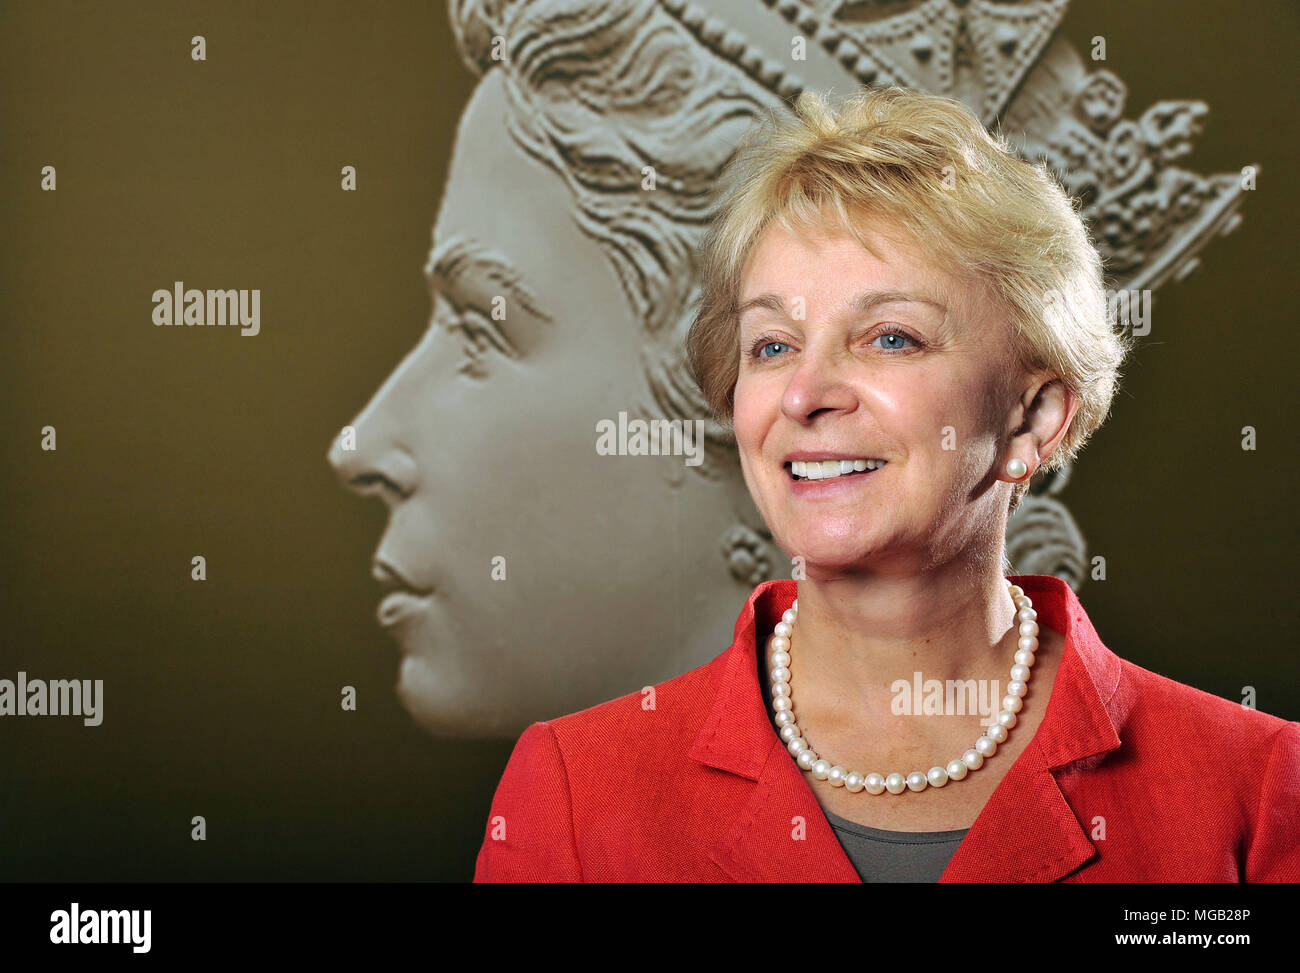 Moya Greene, Chief Executive of the Royal Mail, photographed in their London offices, Unilever House. - Stock Image